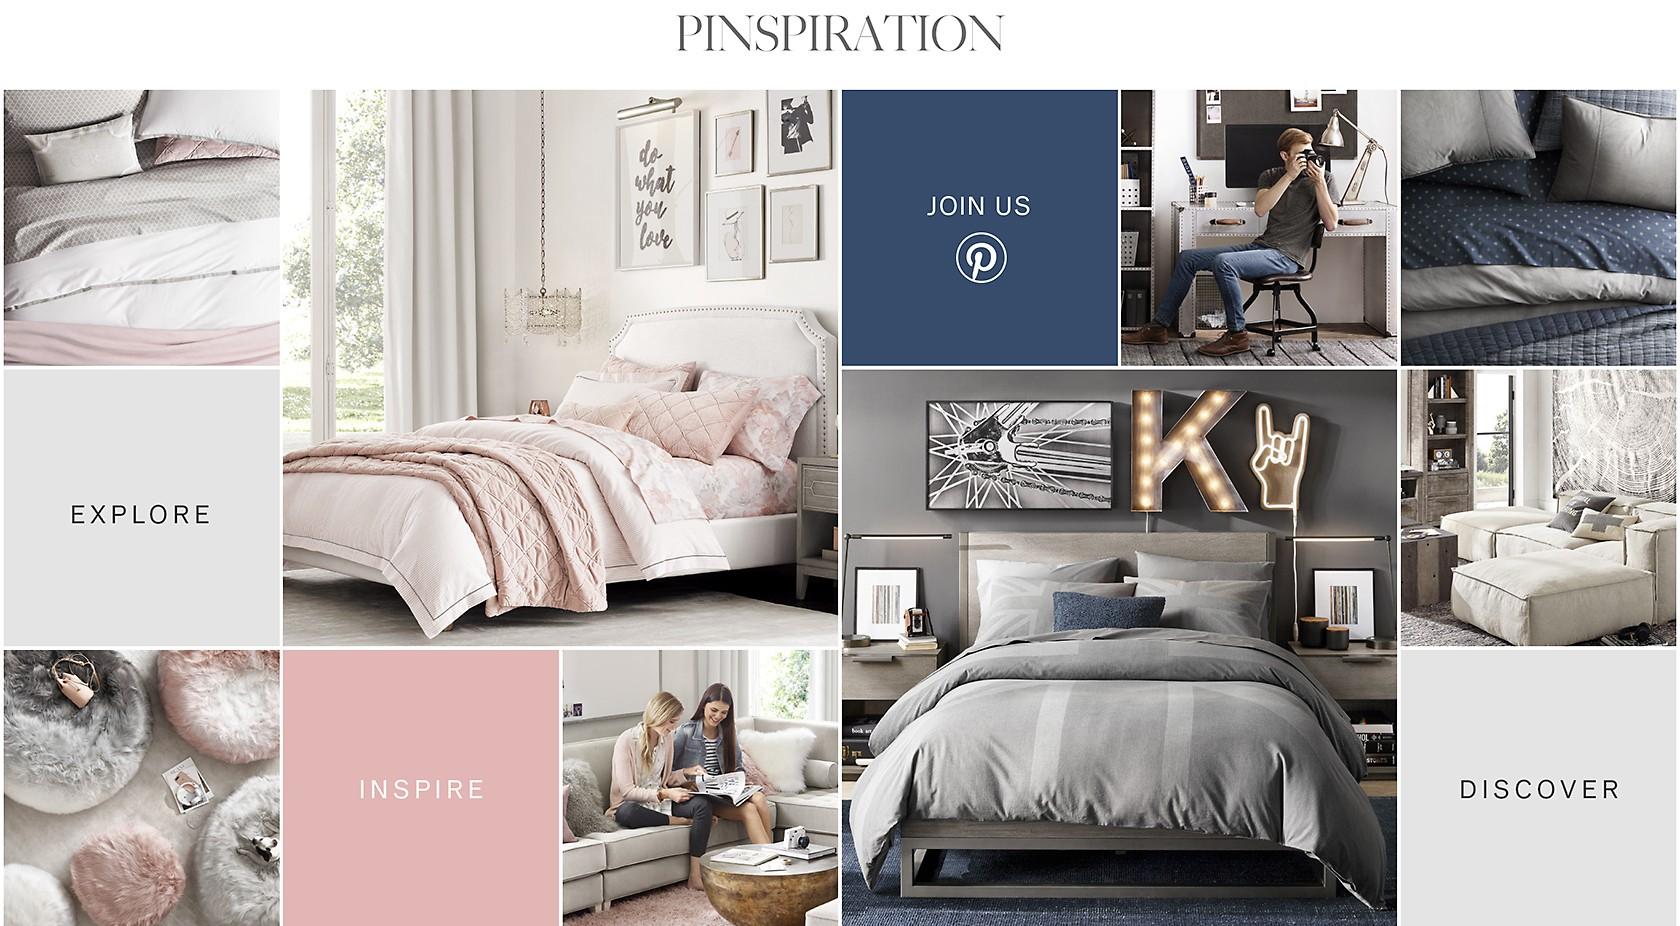 Get Inspired by Our Pinterest Boards